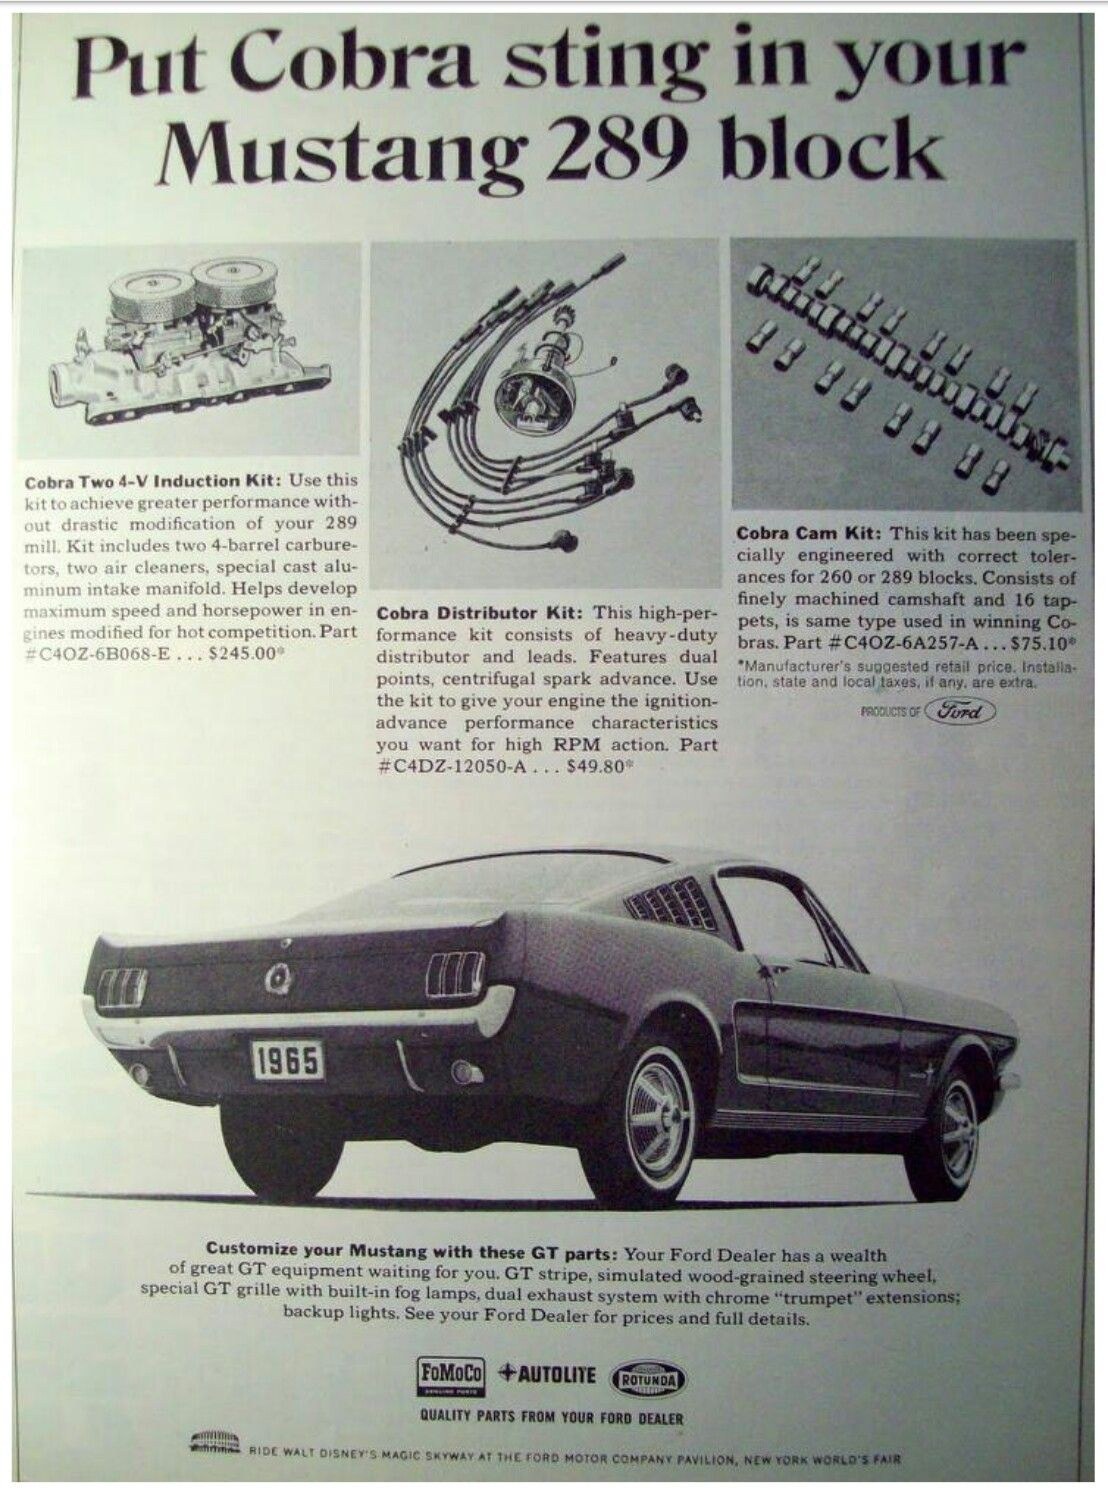 60's Ford Mustang performance parts | Mustang classic cars